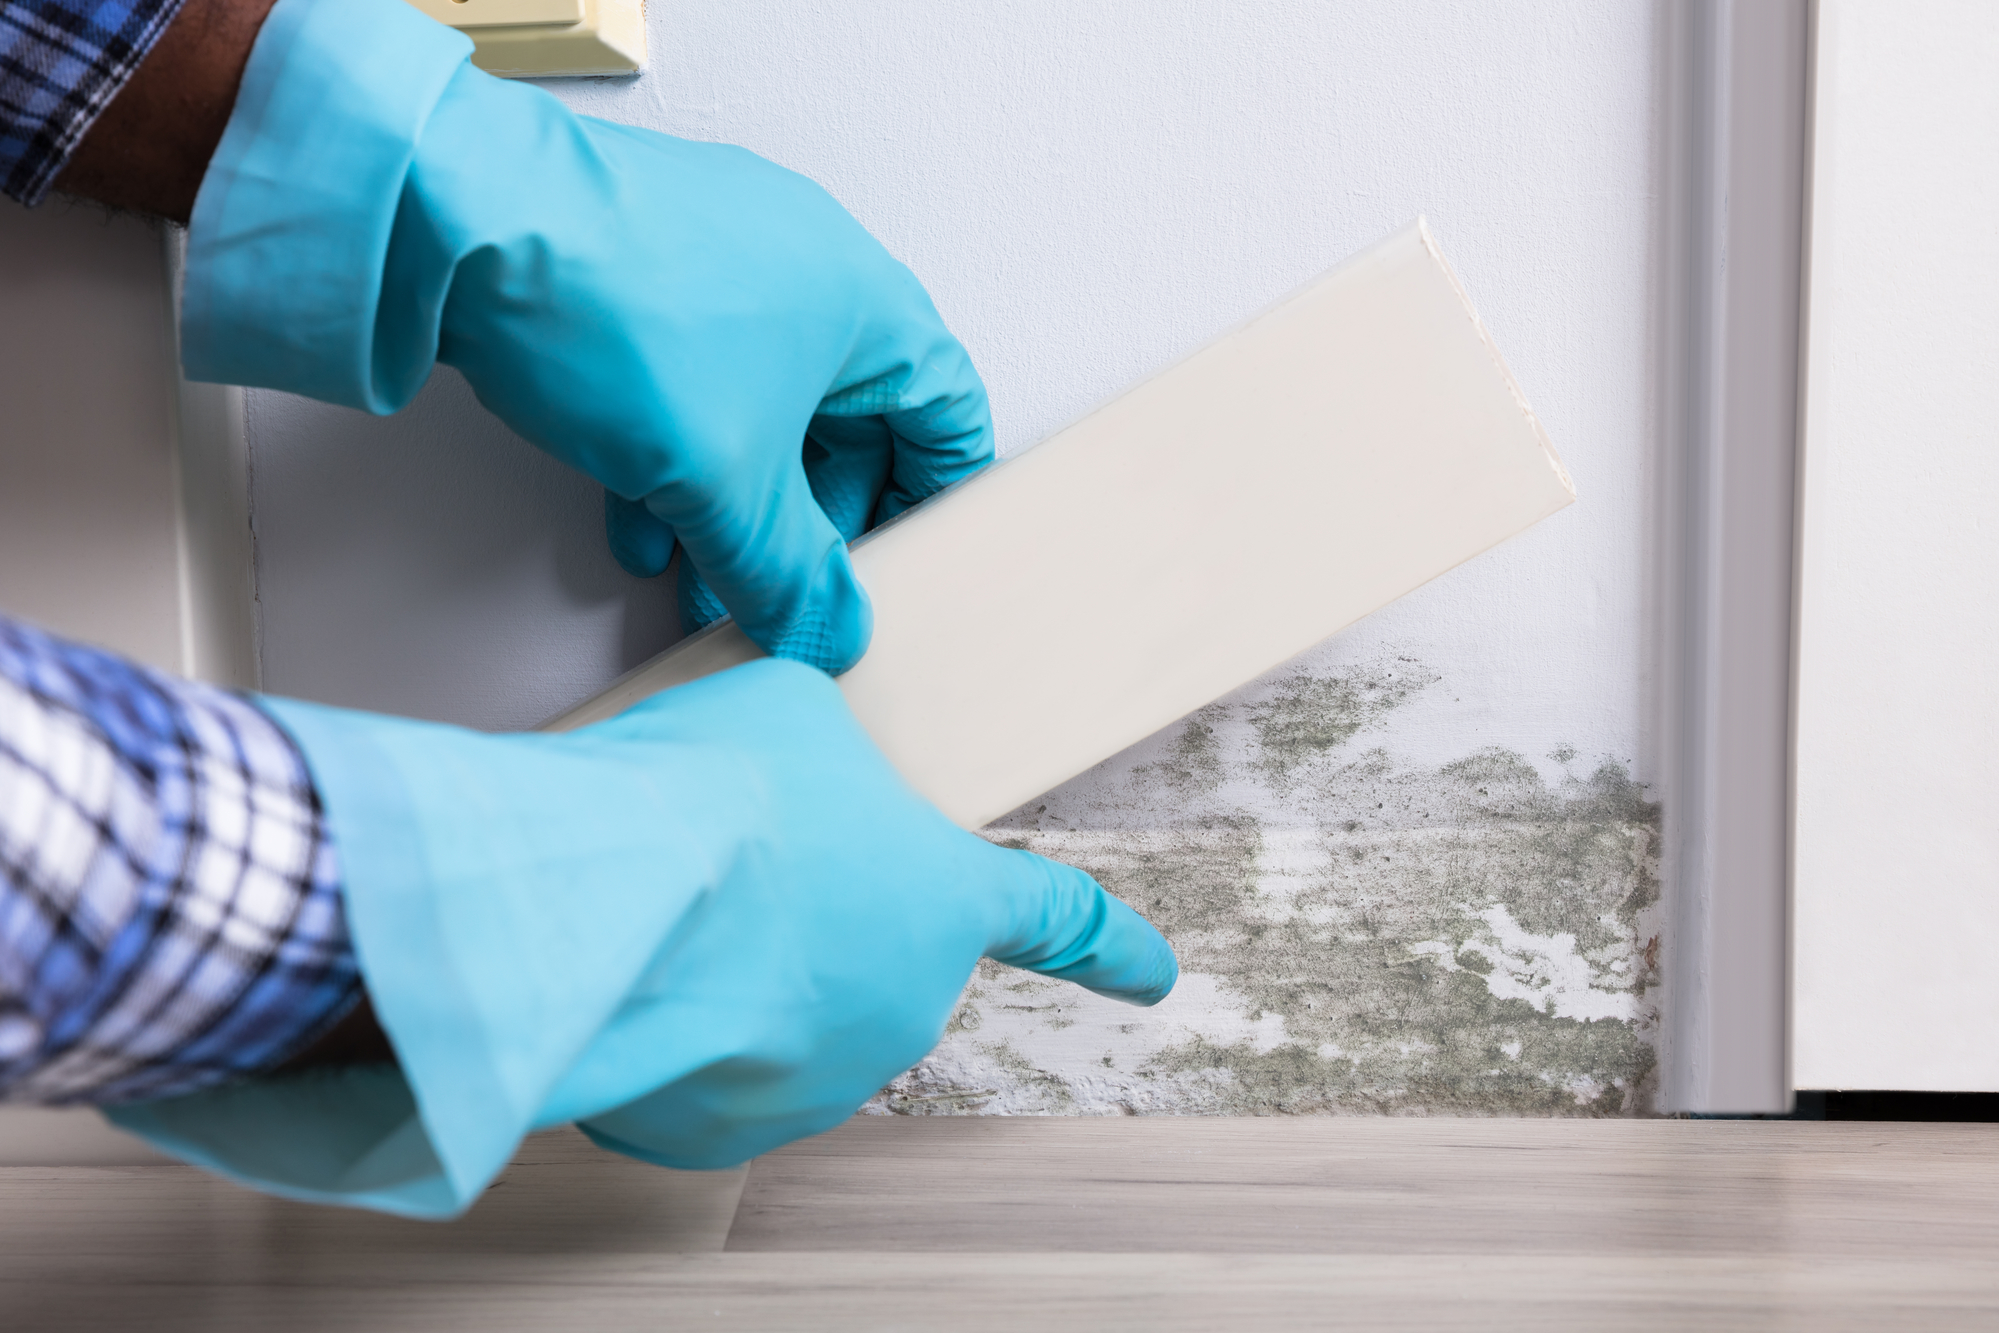 Top Reasons to Consider a Home Mold Inspection